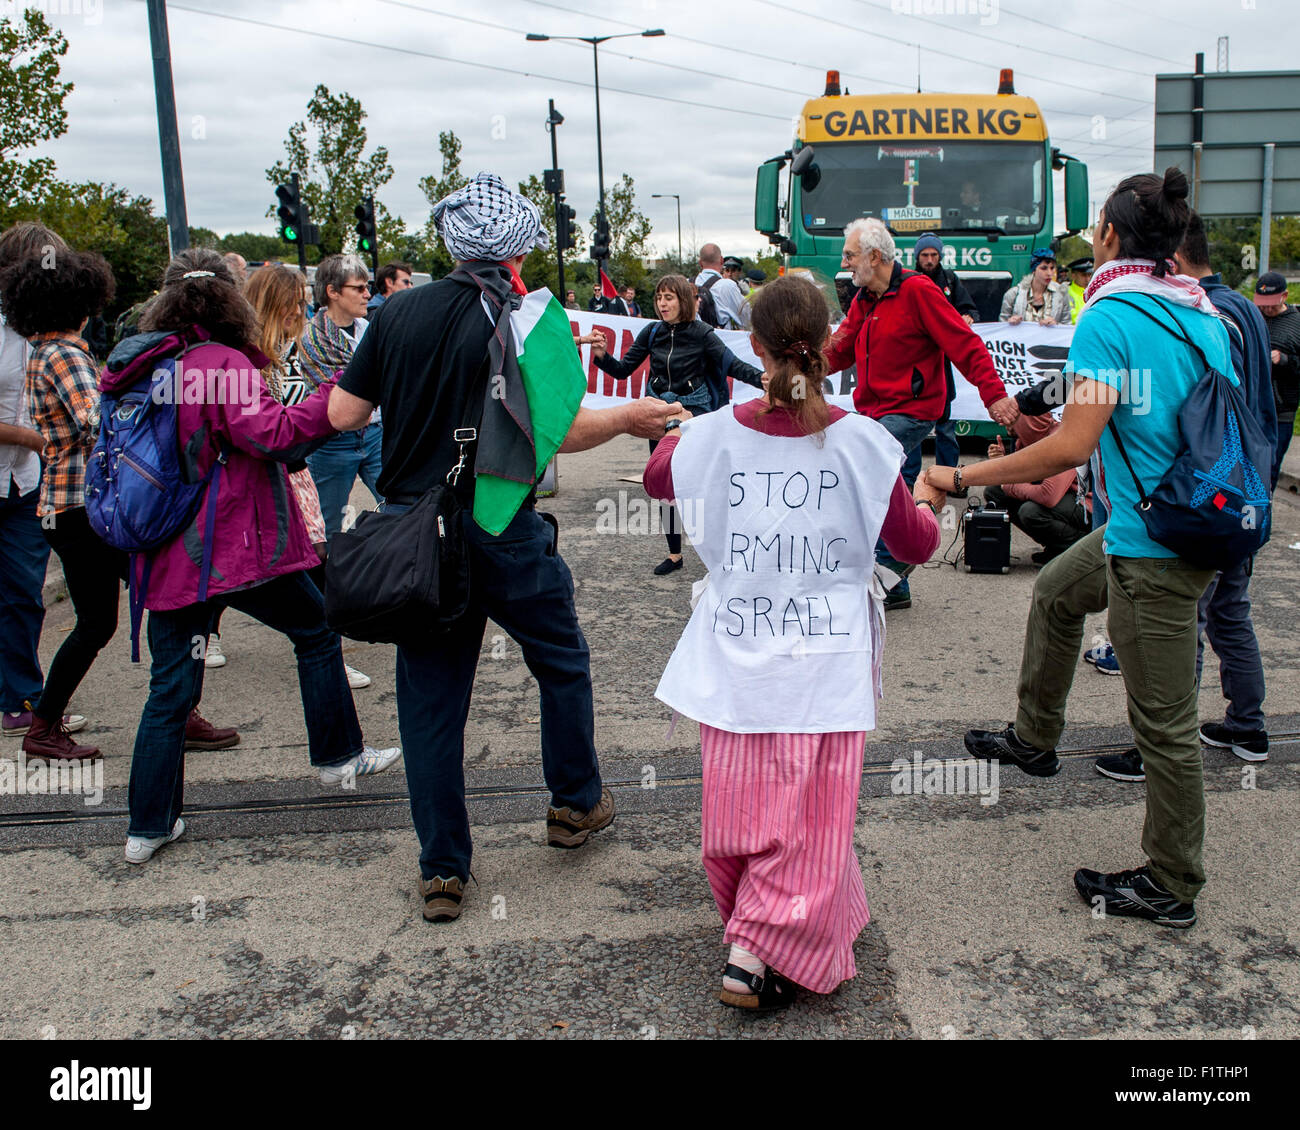 London, UK. 7th September, 2015. Activists block the delivery of a military vehicle during a protest against the Stock Photo